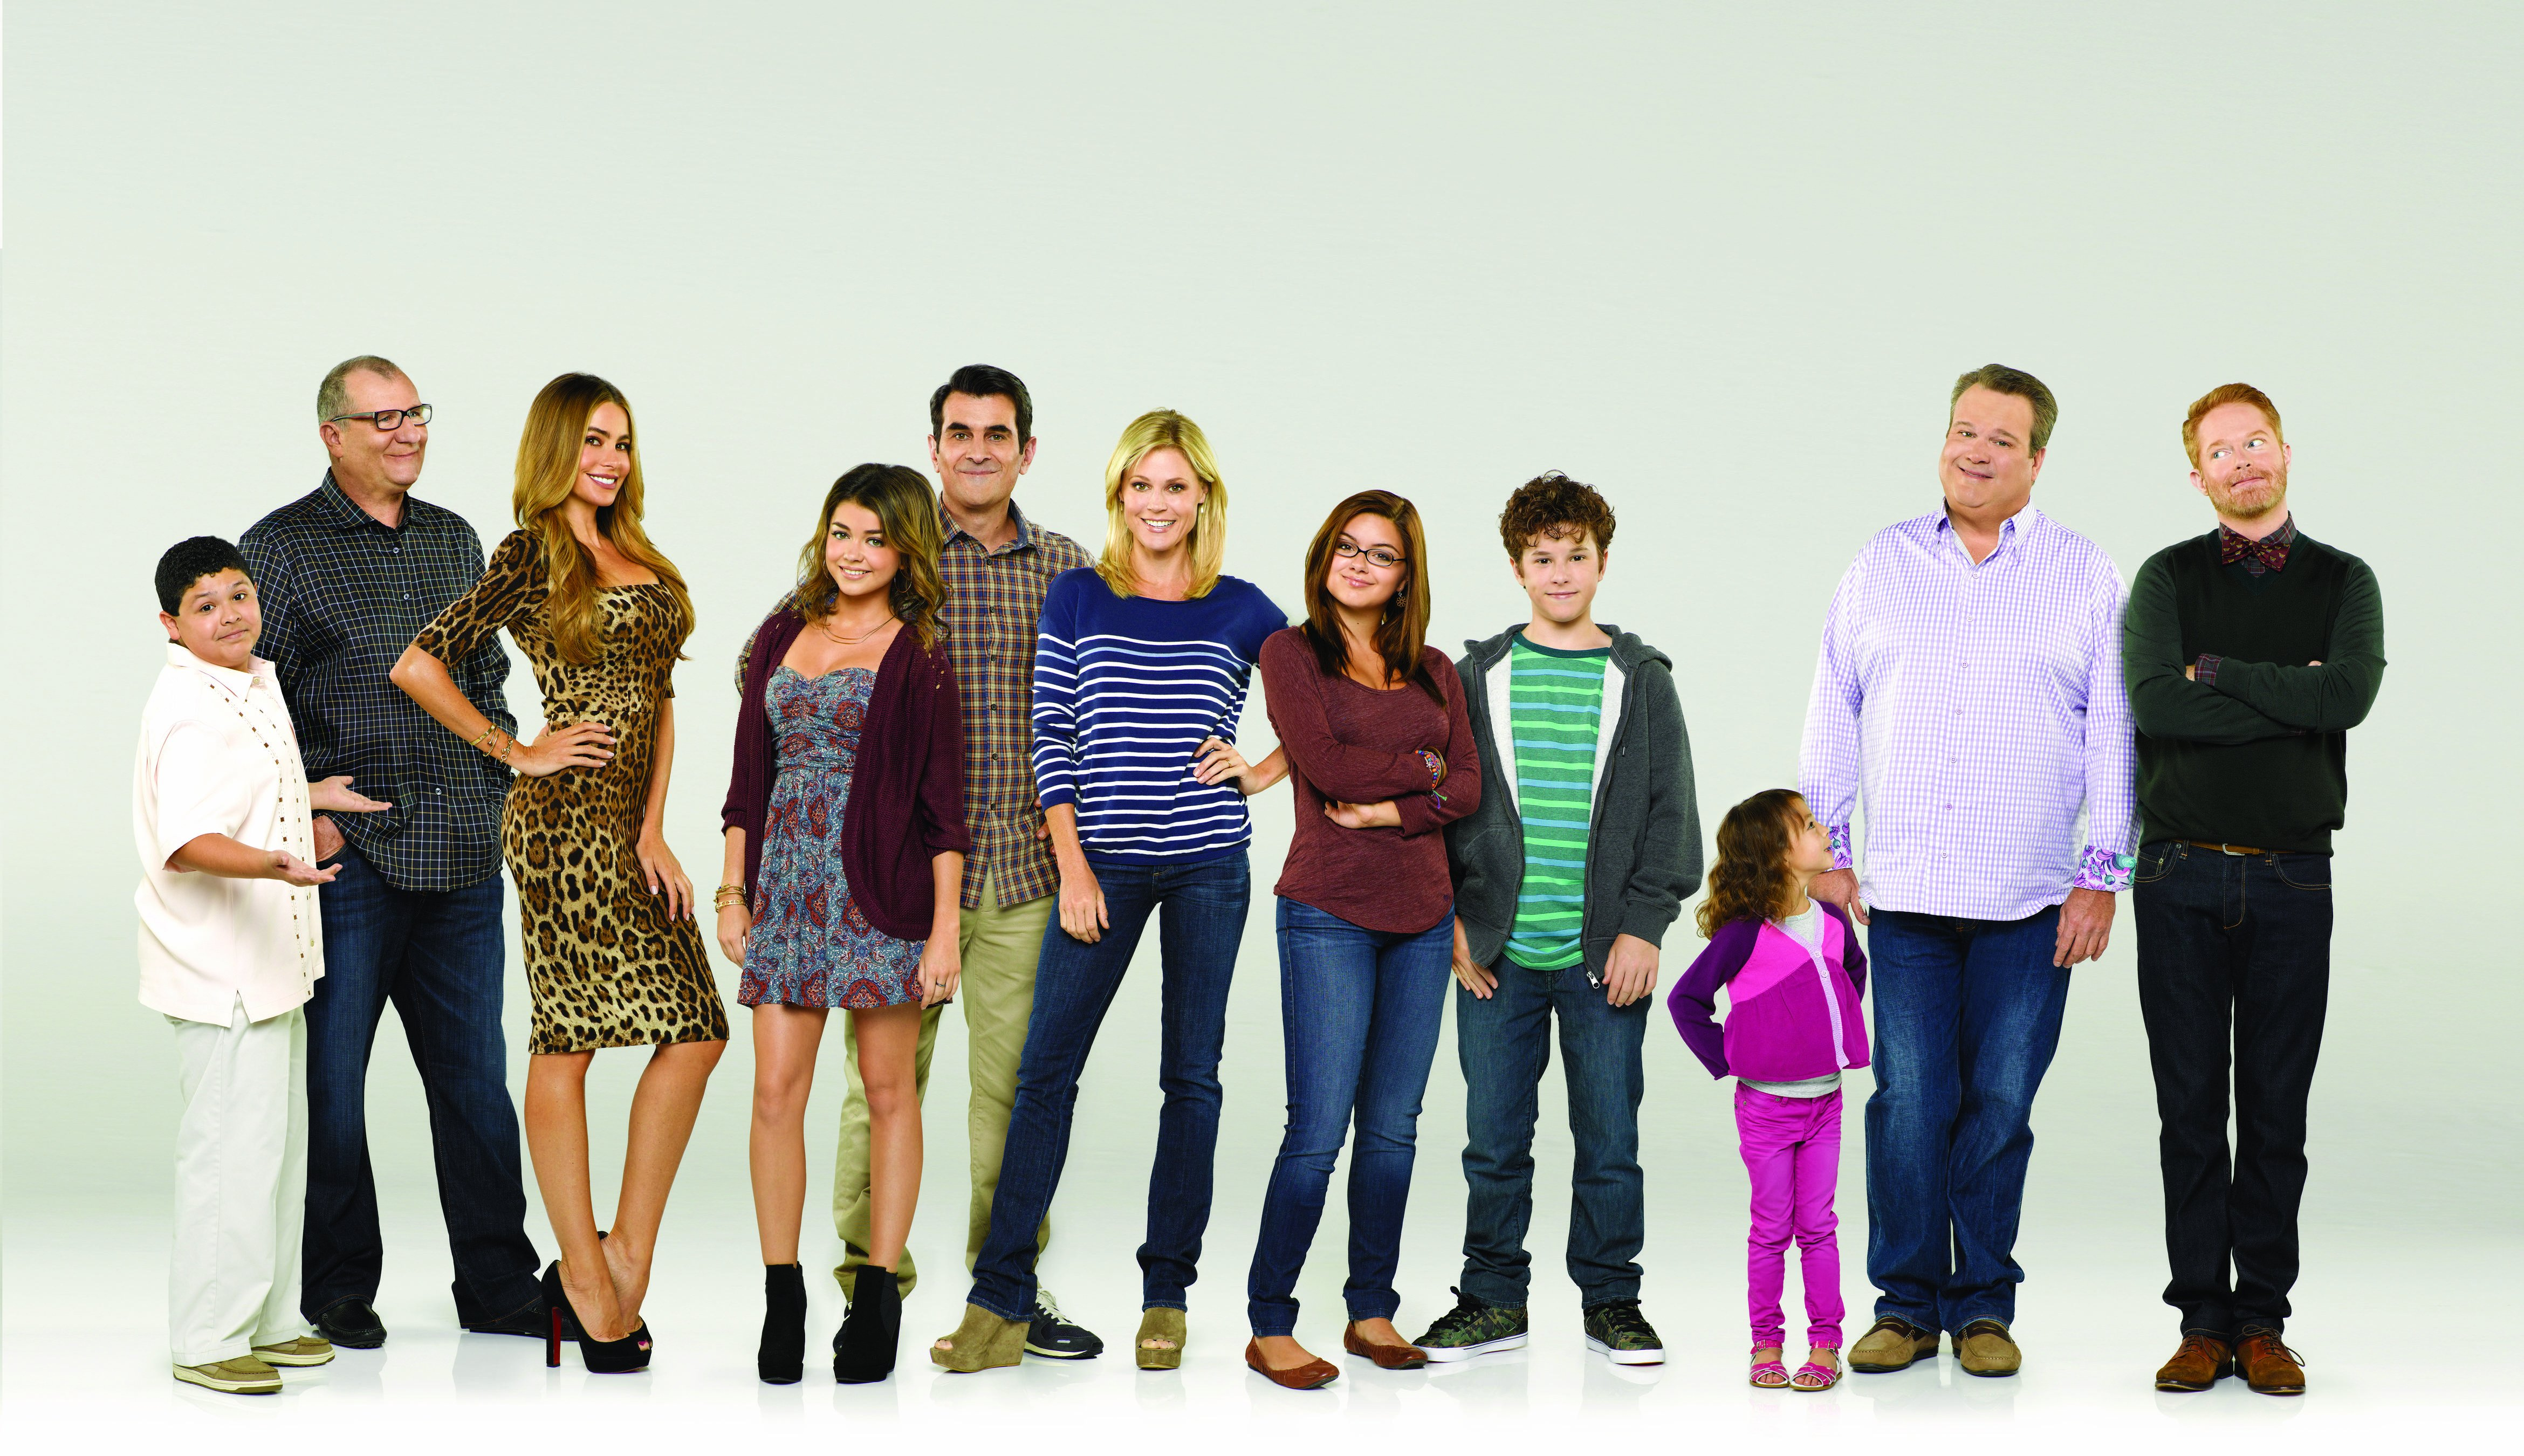 modern family images wallpaper - photo #28